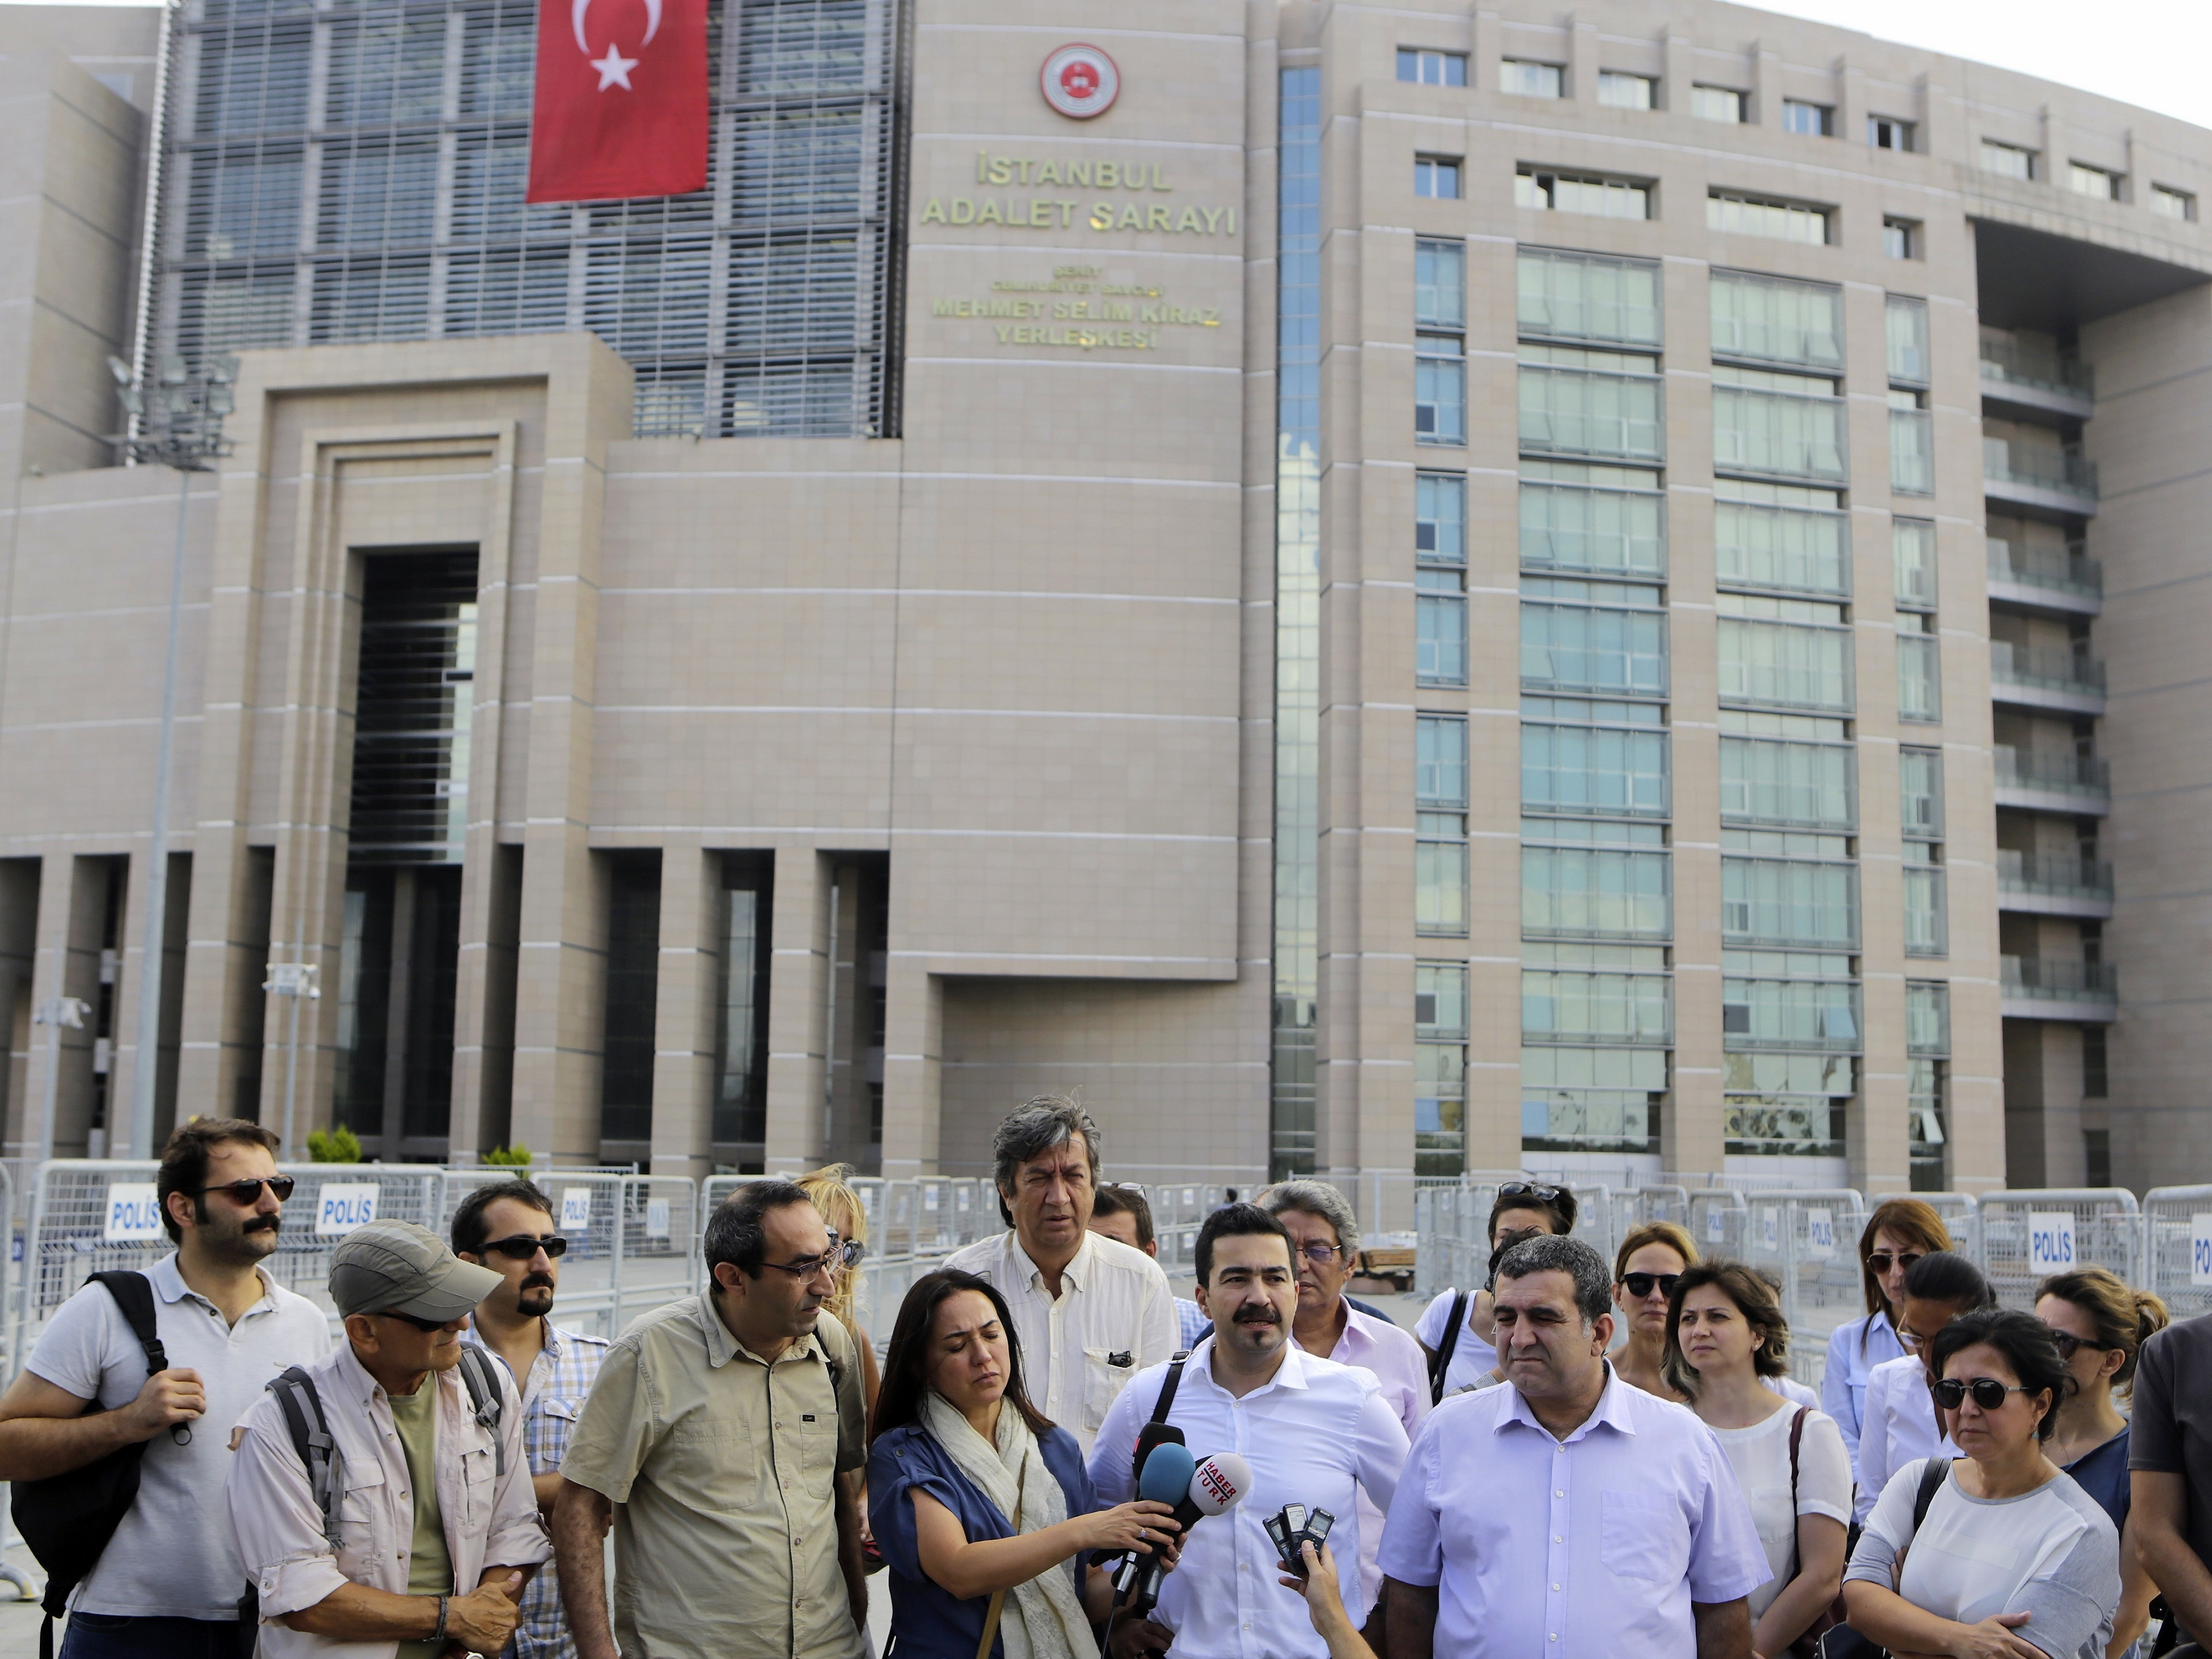 Journalists gather outside a court building to support journalist Bulent Mumay, who was detained Tuesday in connection with the investigation of the attempted coup in Turkey. (Photo by Petros Karadjias/AP)